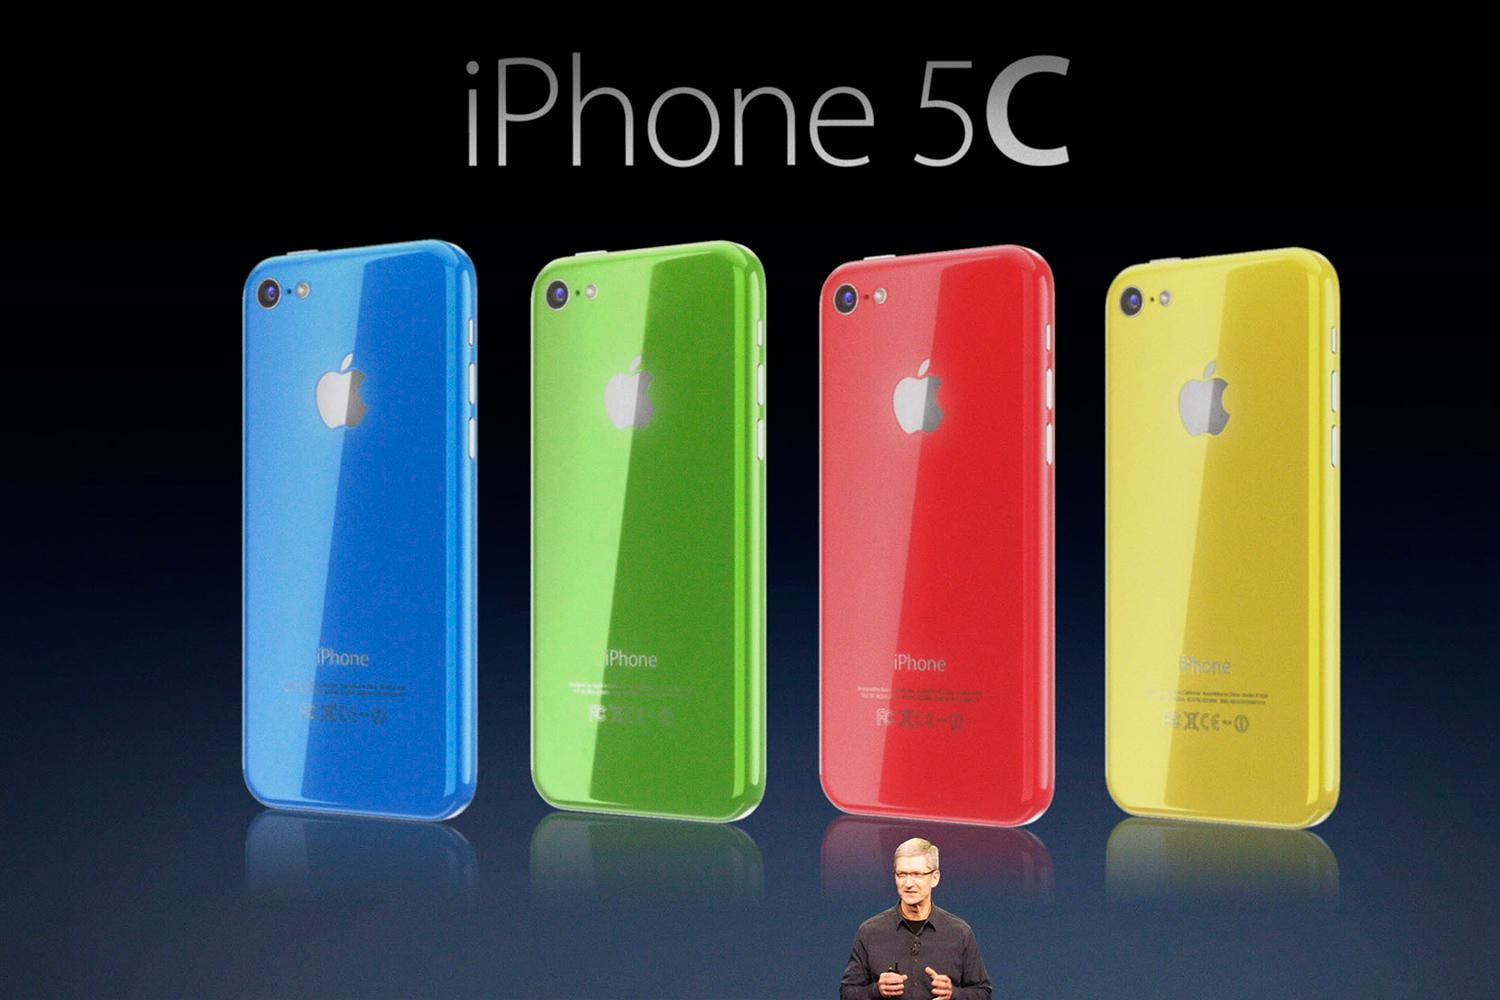 iphone 5c colors iphone 5c what does the c stand for digital trends 11089